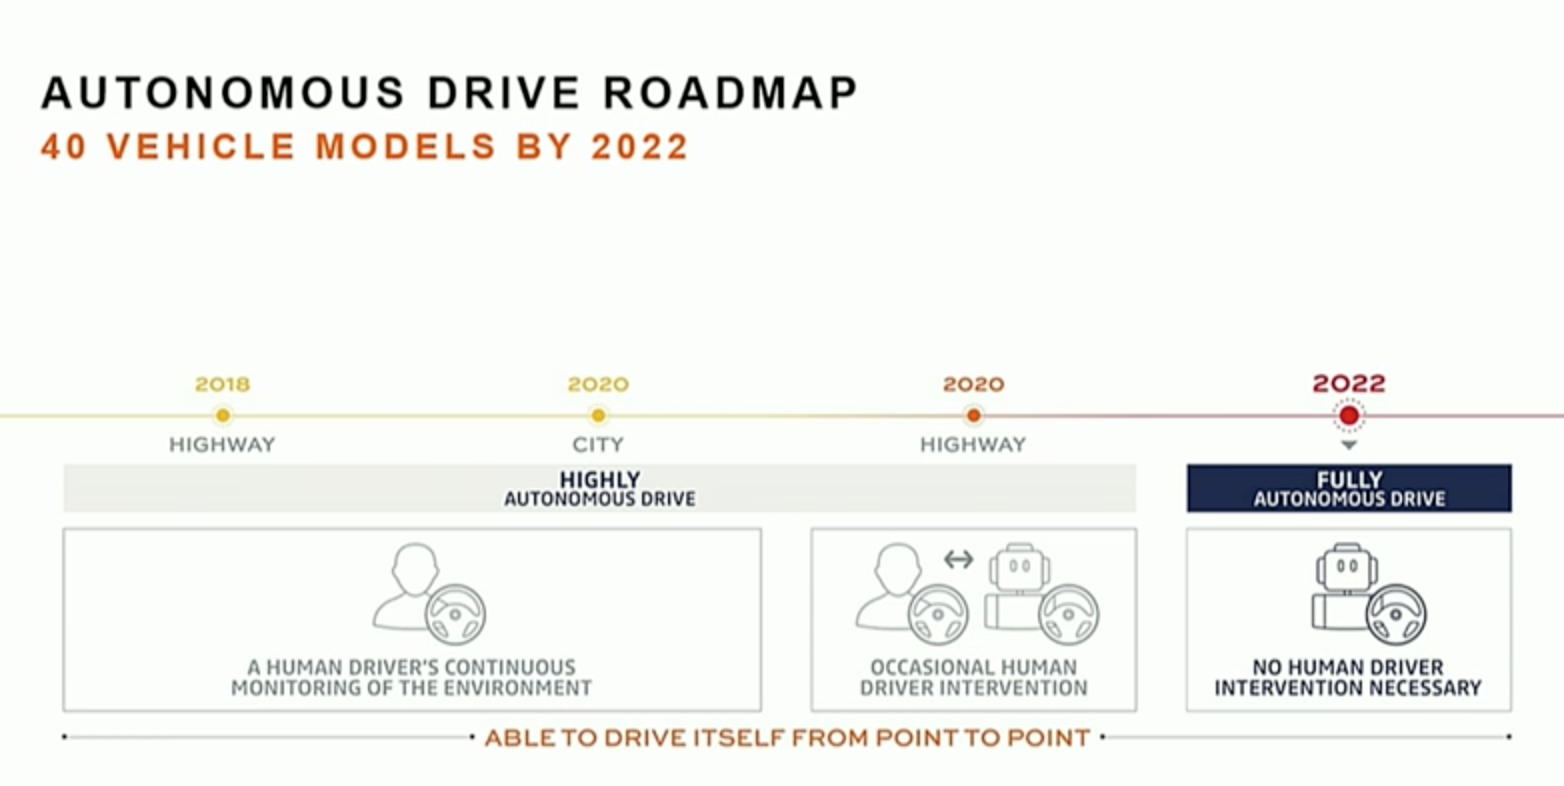 Renault-Nissan lays out plans for 12 new EVs and 'robo' global ride-hailing service